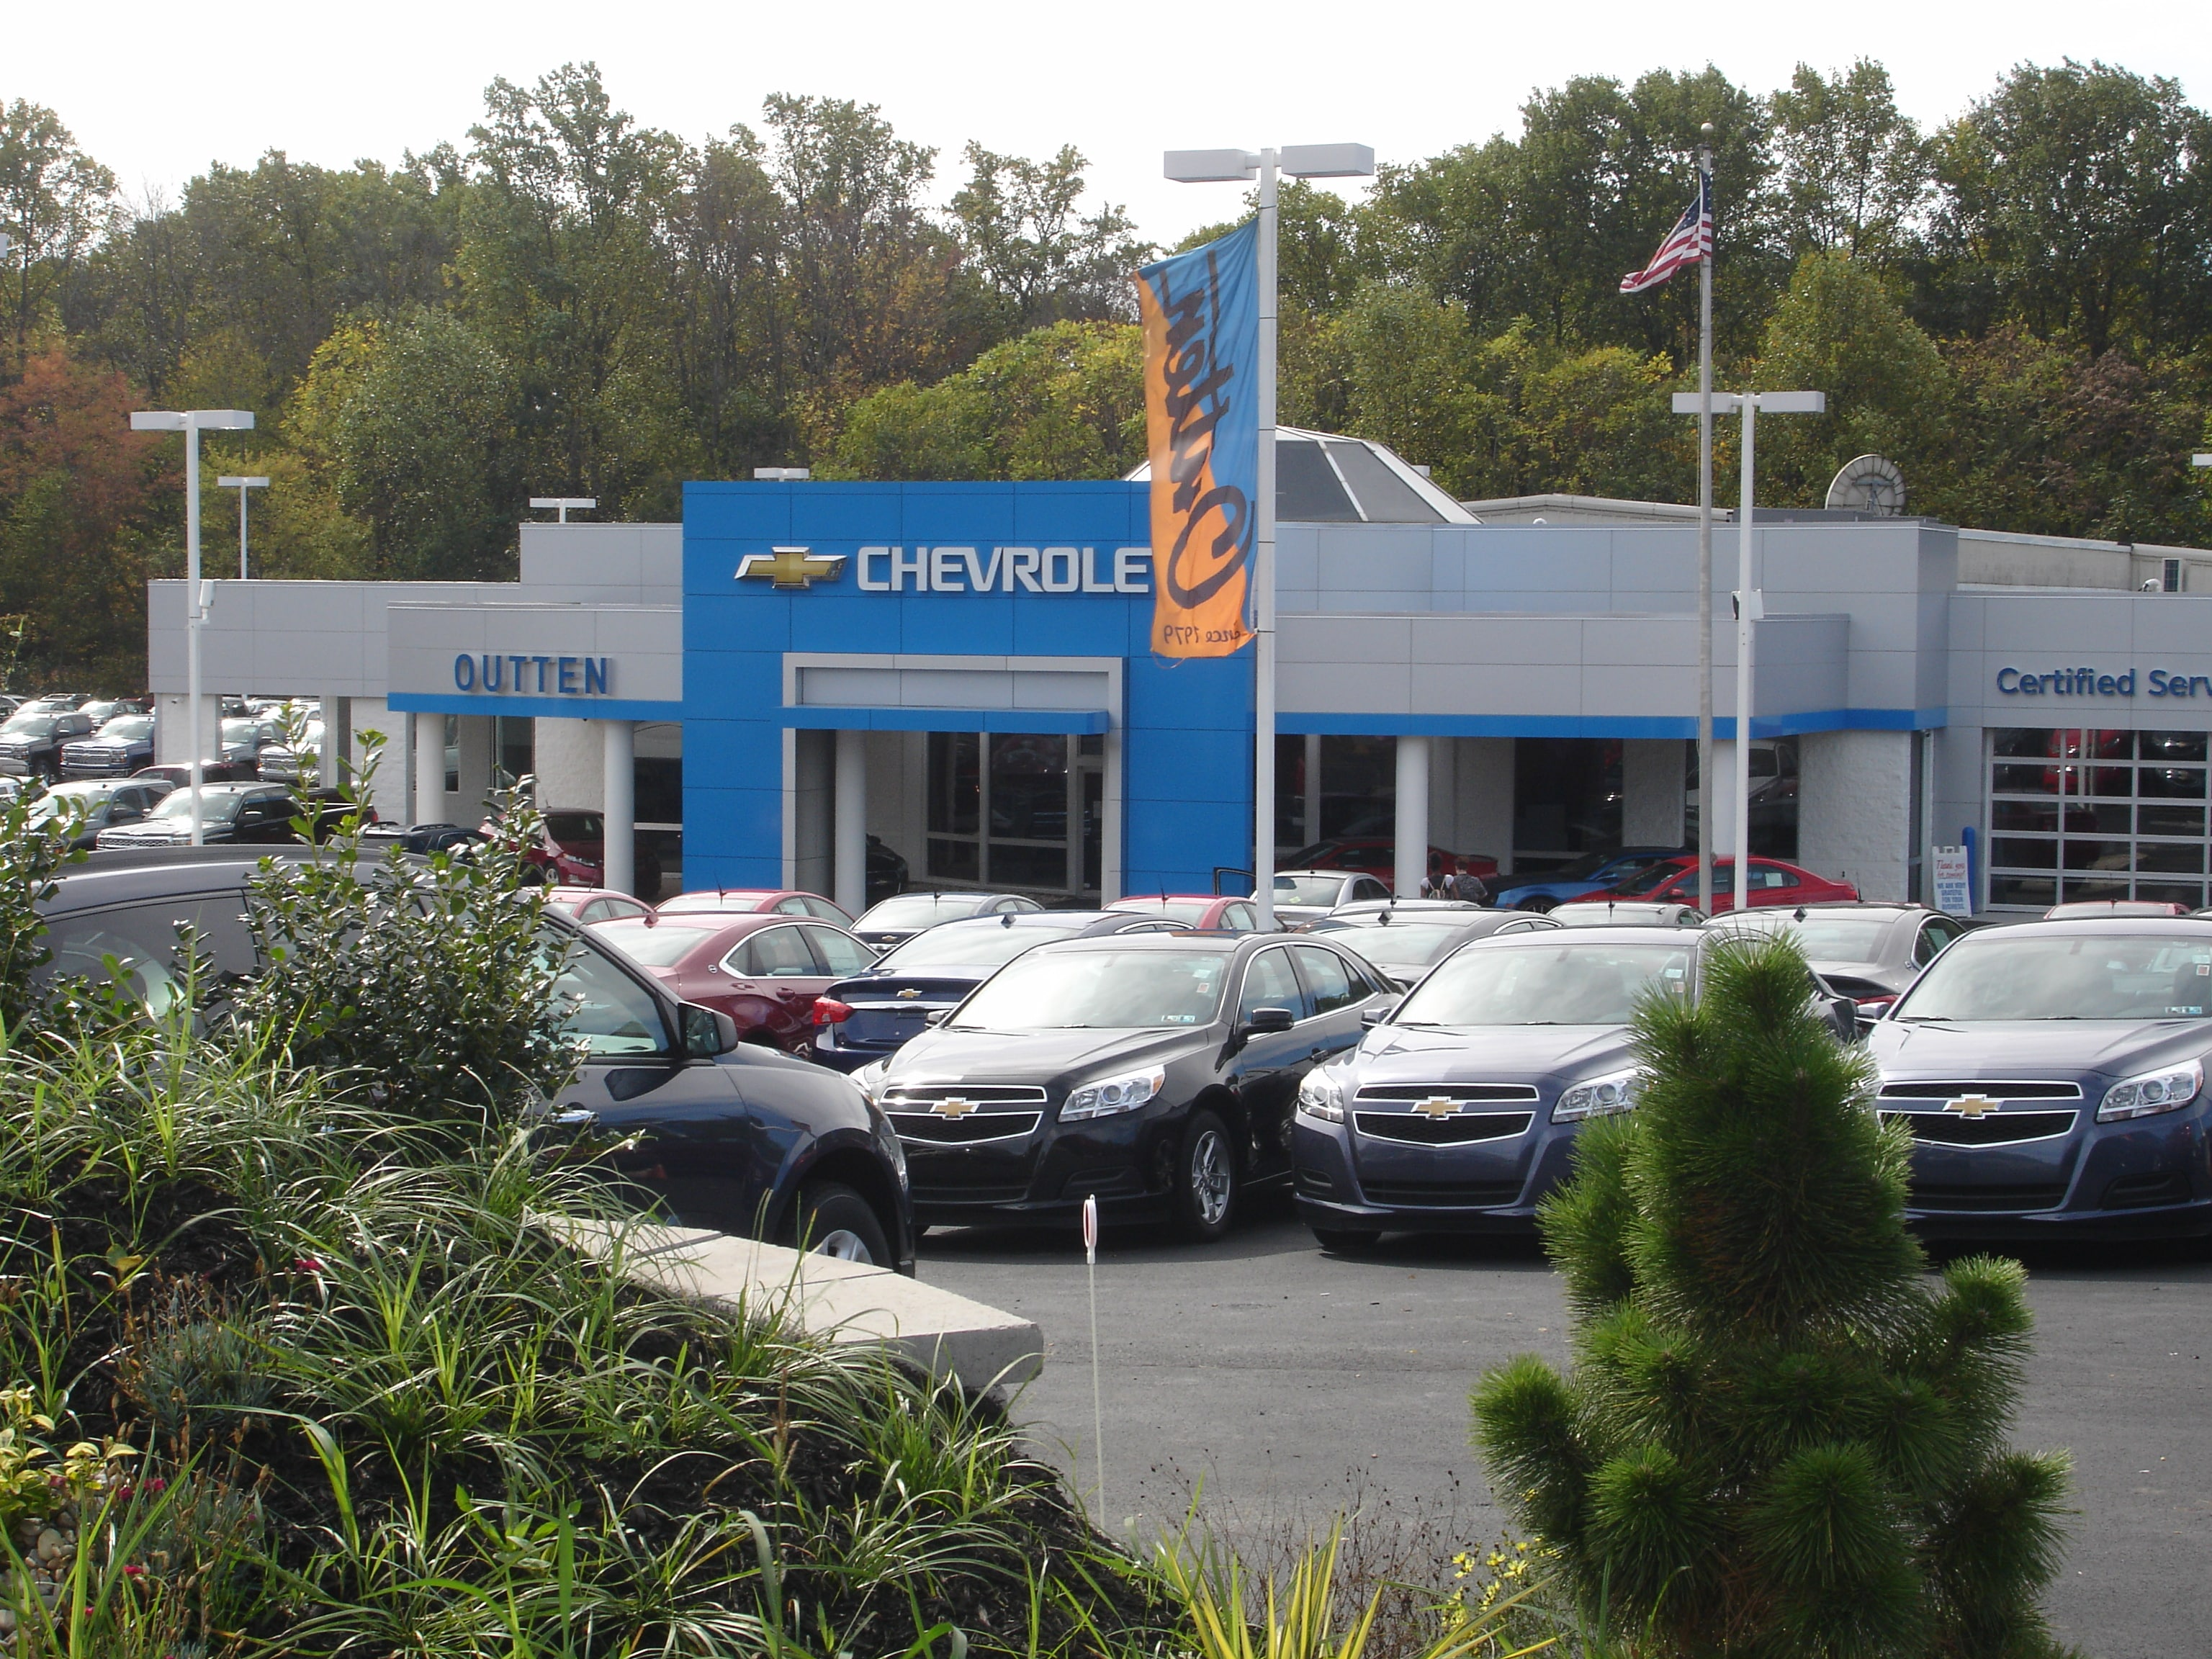 Marvelous Outten Family Of Dealerships Serving The Allentown ...